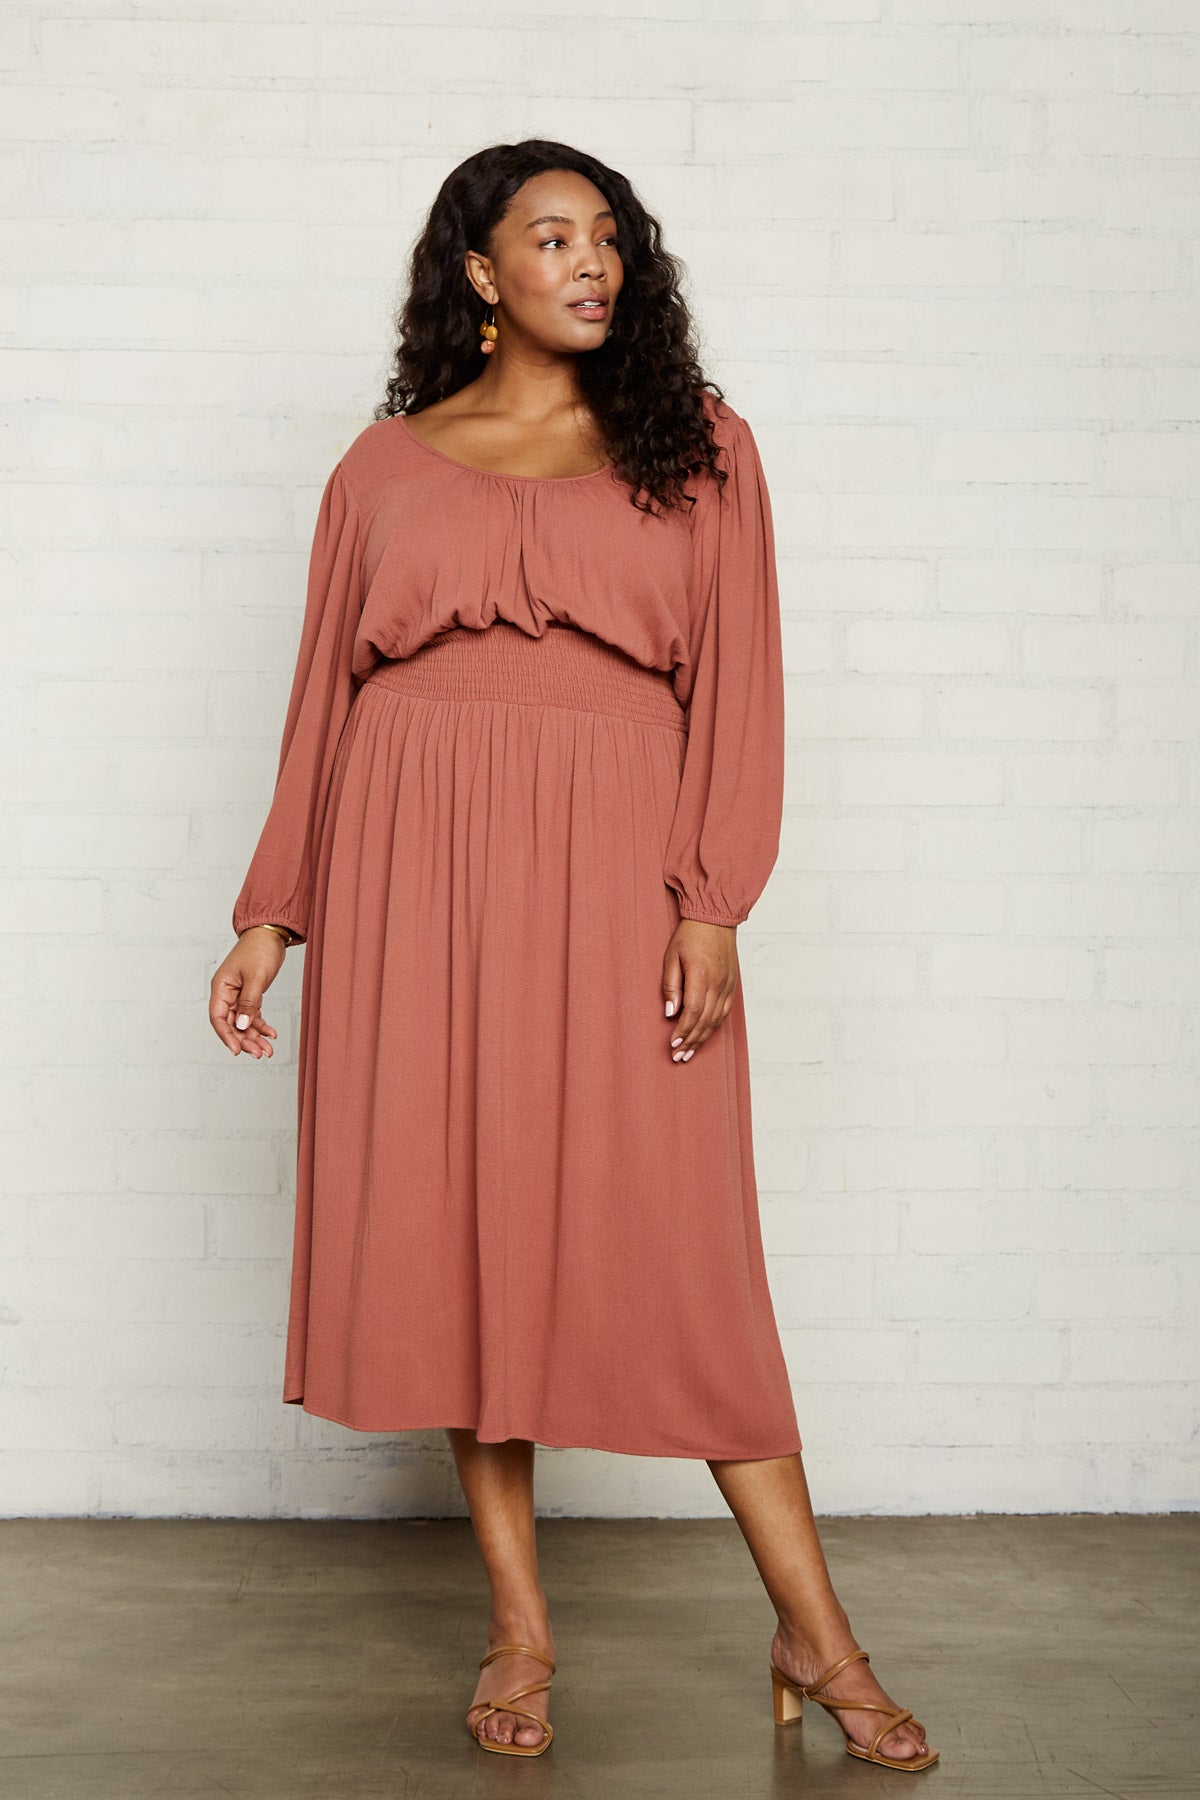 Pucker Rayon Edith Dress - Rosewood, Plus Size